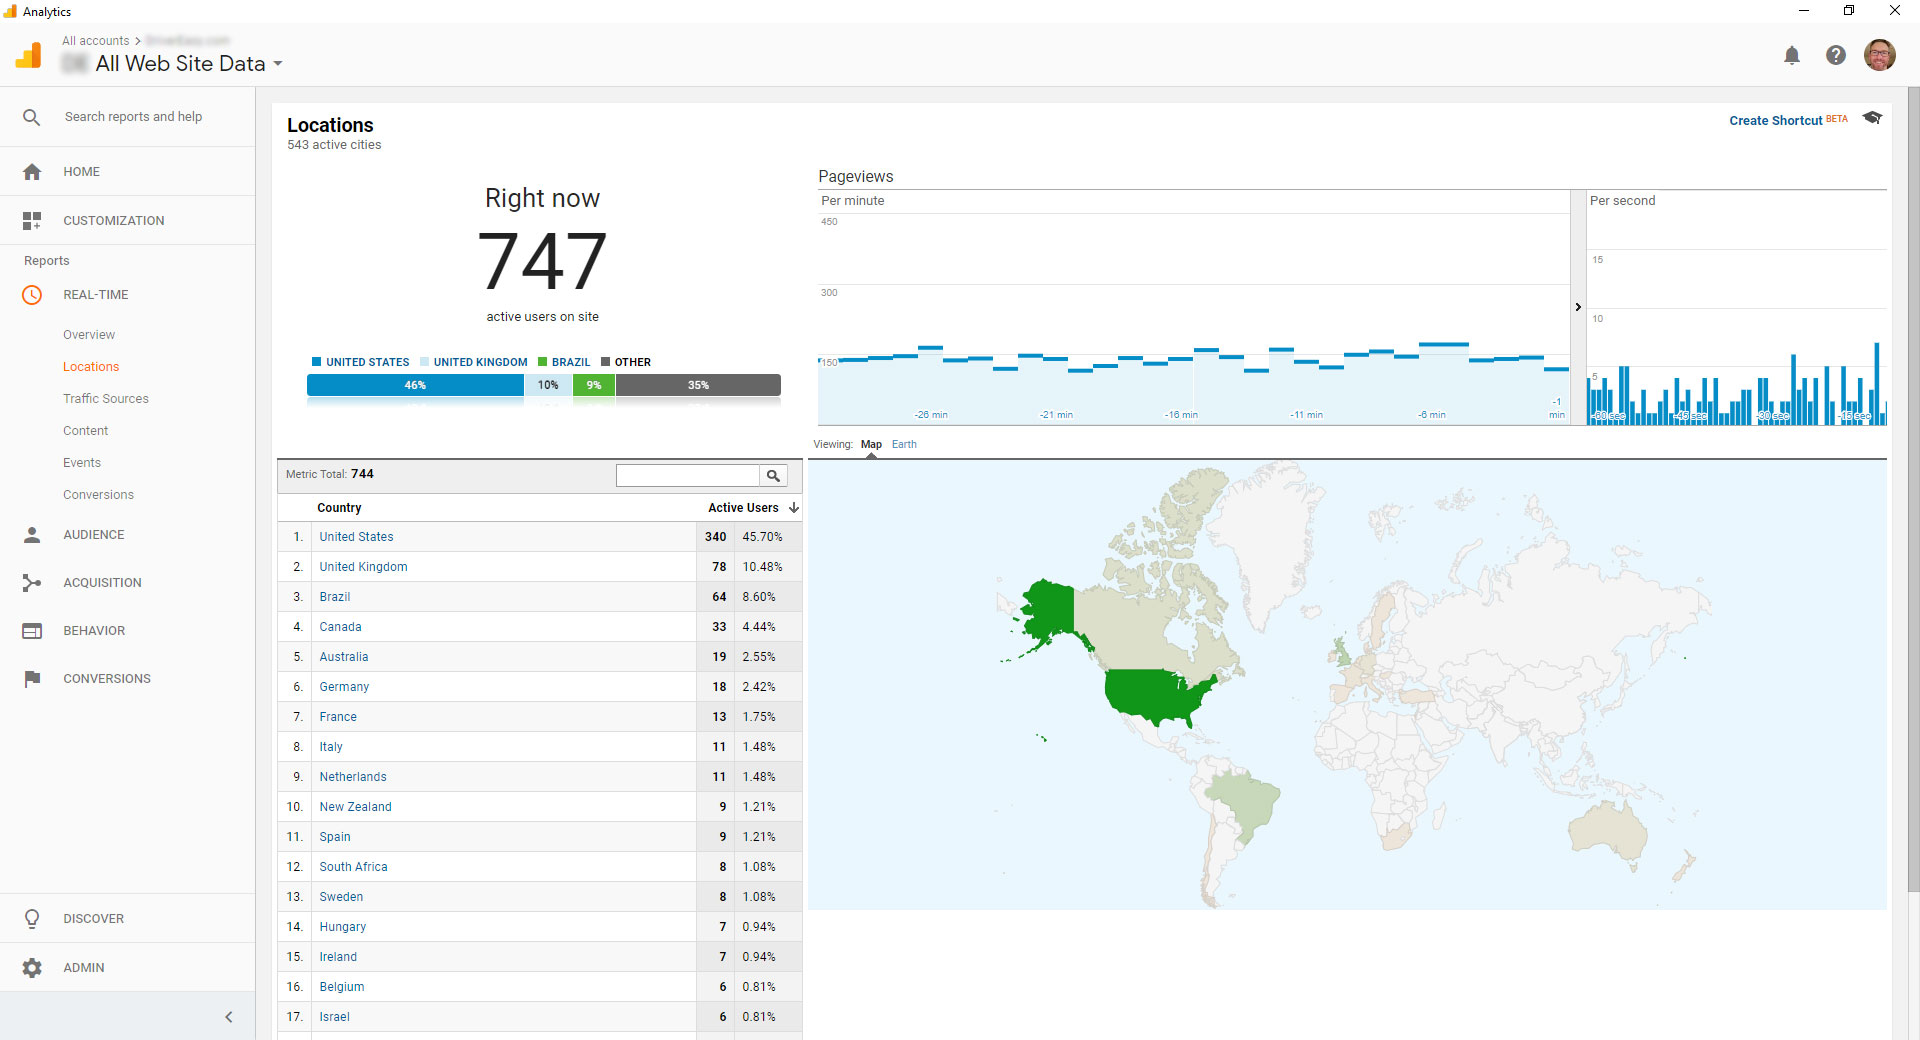 Overall site traffic real time